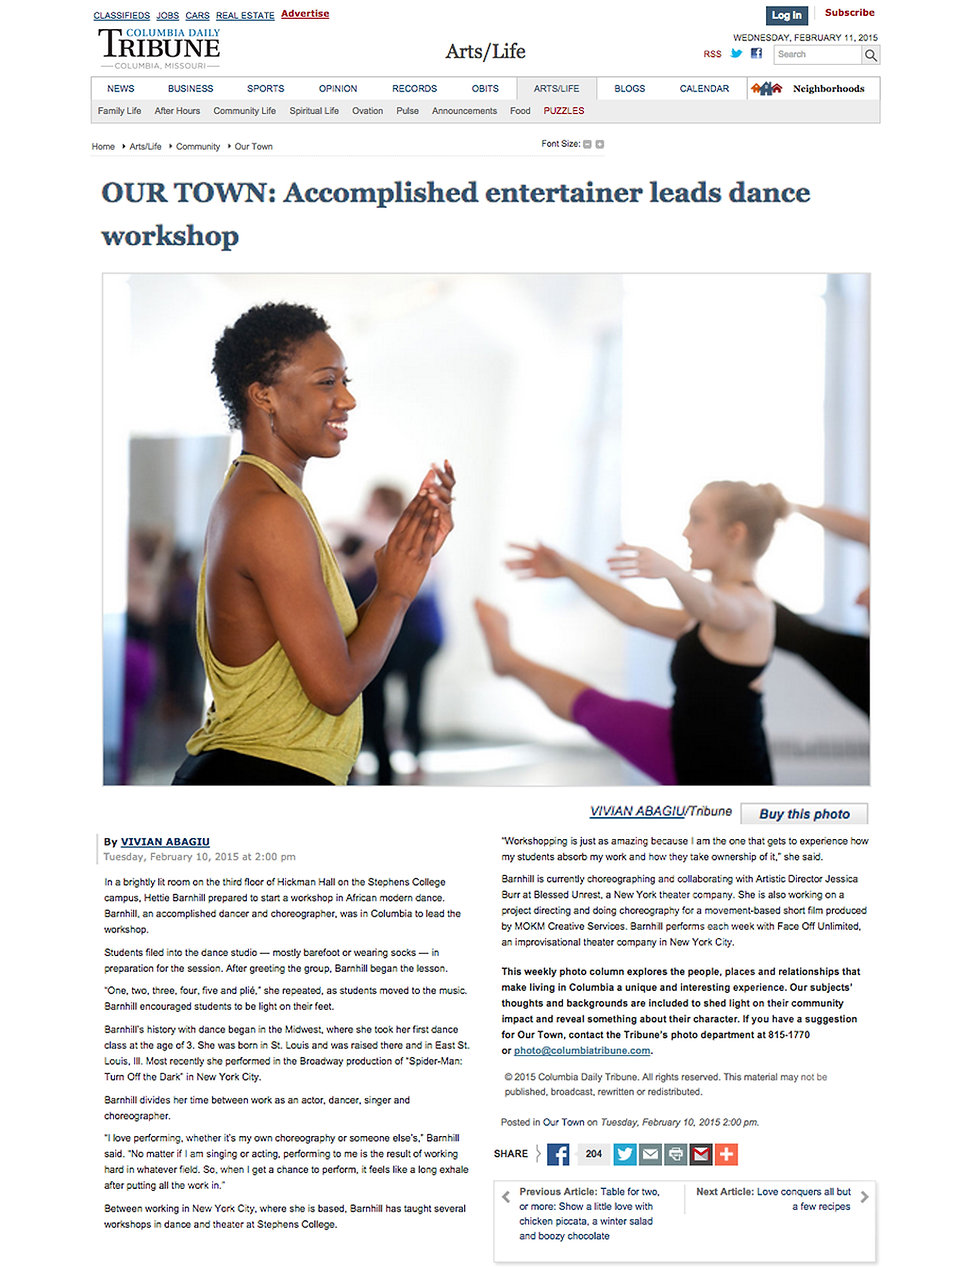 Columbia Daily Tribune of Columbia, Missouri writes an article about Hettie Barnhill of Broadway and her time teaching masters classes and workshops at Stephens College for their Dance and Theatre Majors.